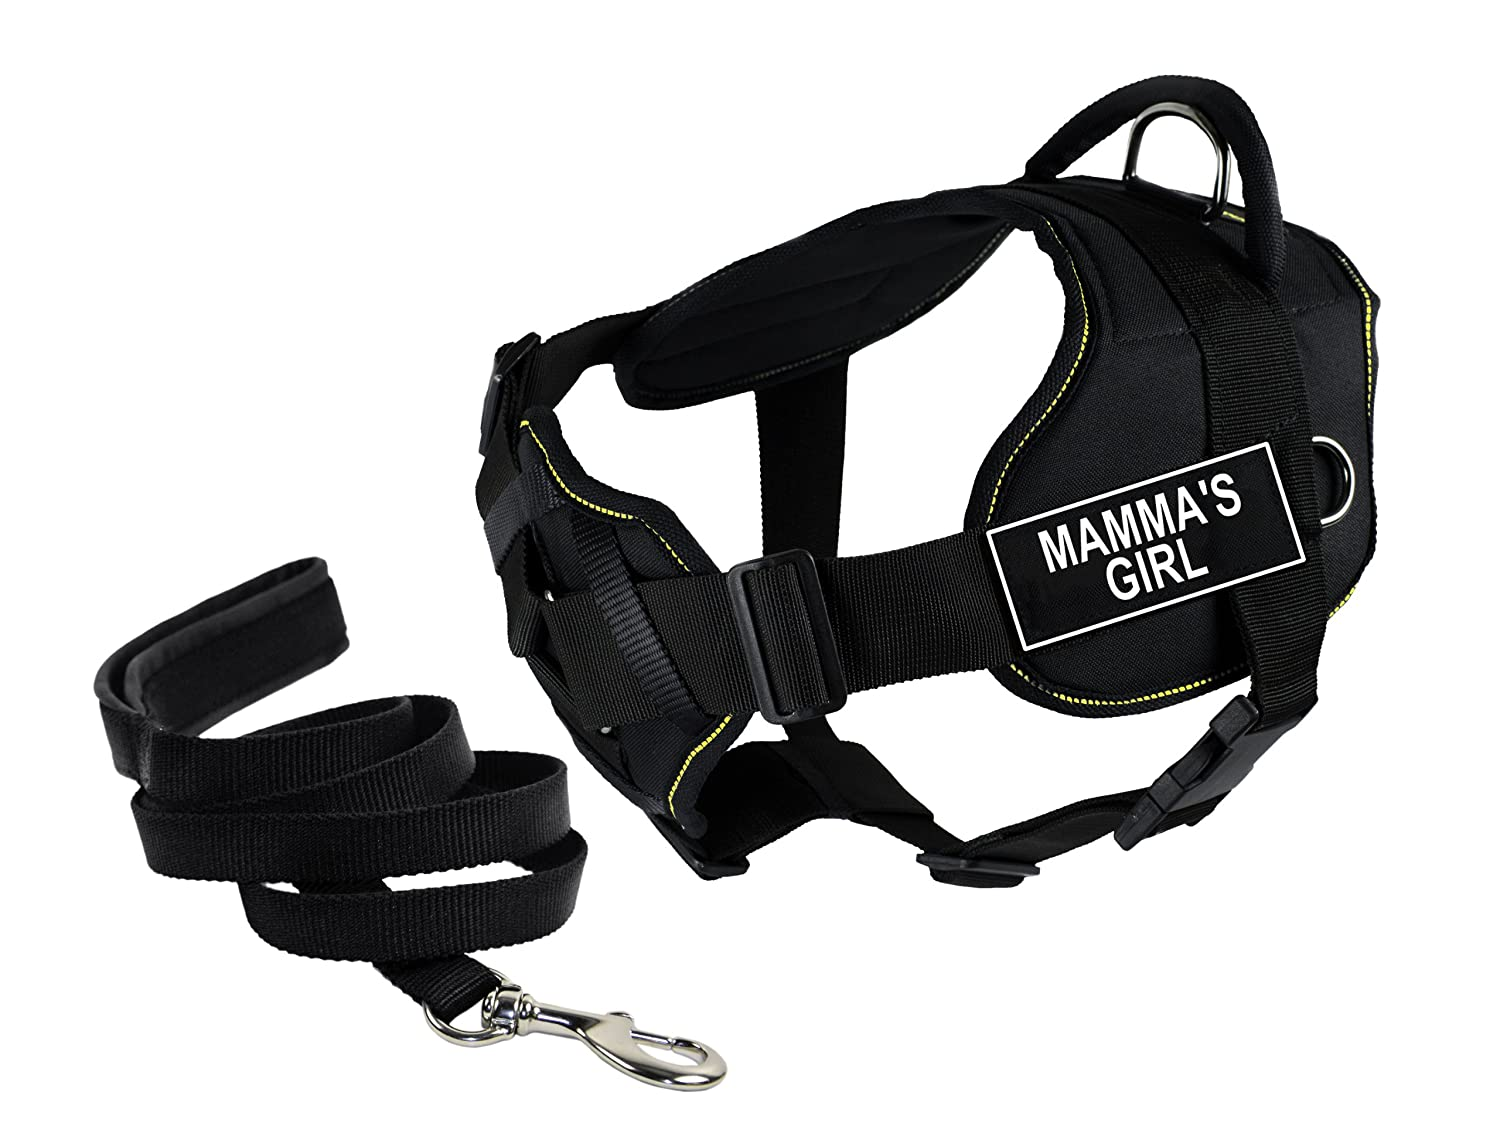 Dean & Tyler's DT Fun Chest Support MAMMA'S GIRL Harness, Large, with 6 ft Padded Puppy Leash.